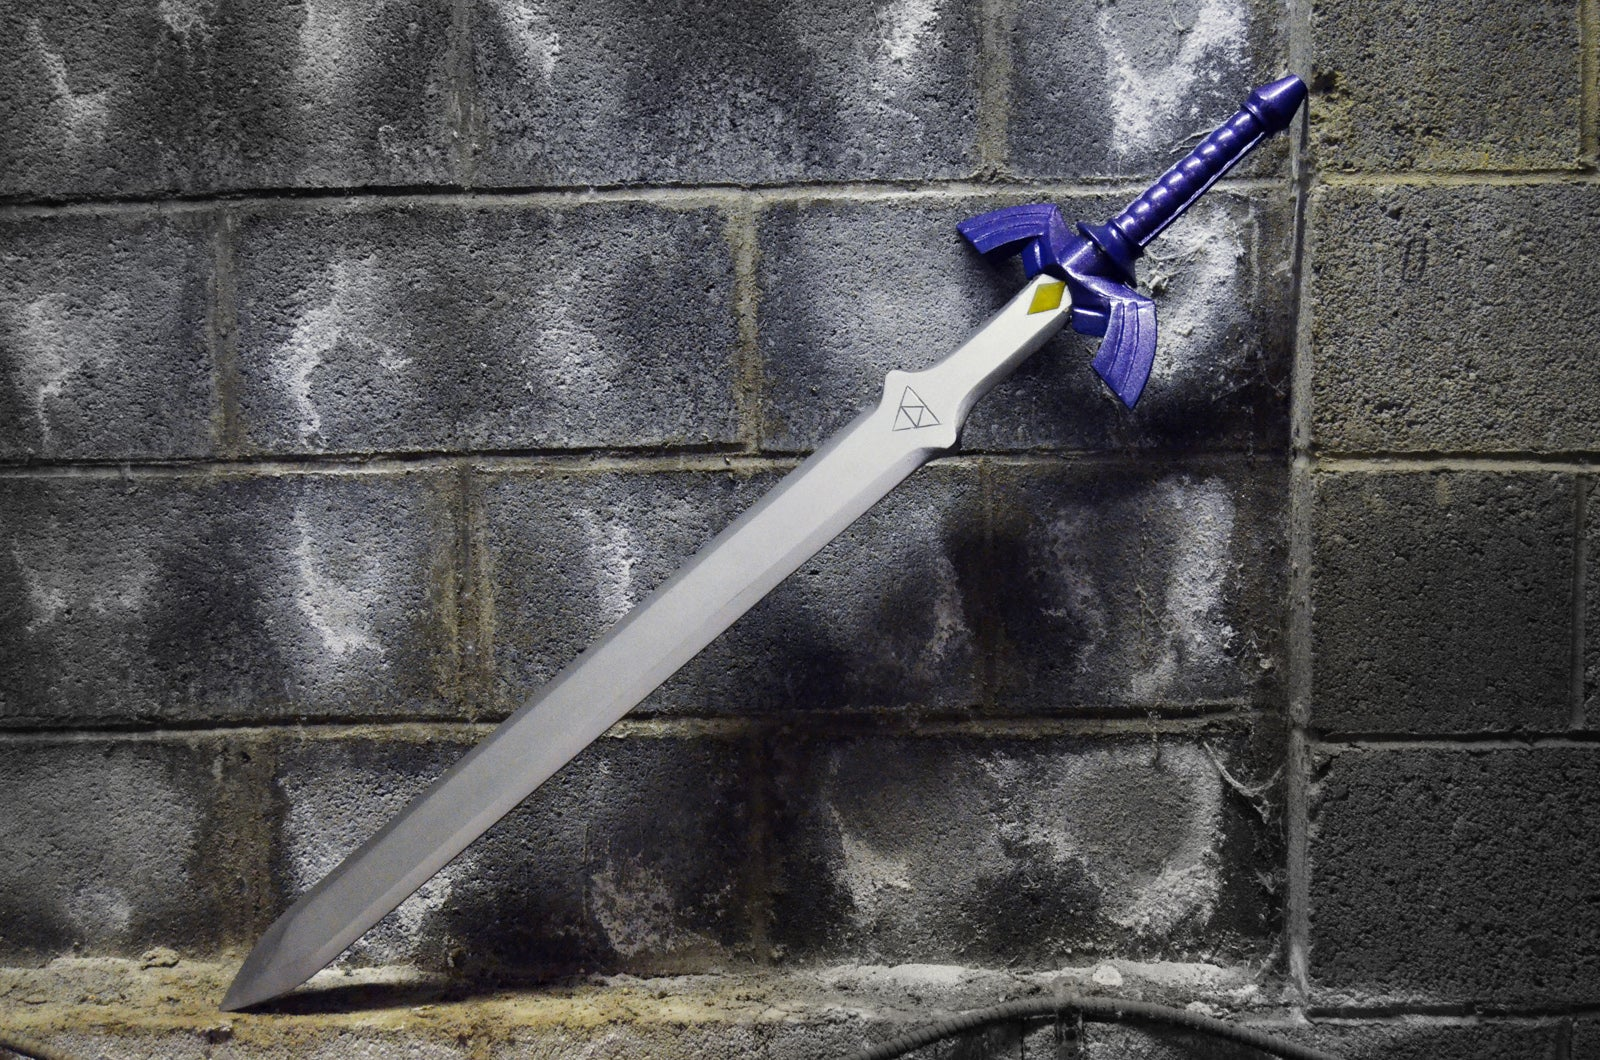 Five Months Later, This Guy Has a Pretty Sweet Legend of Zelda Sword